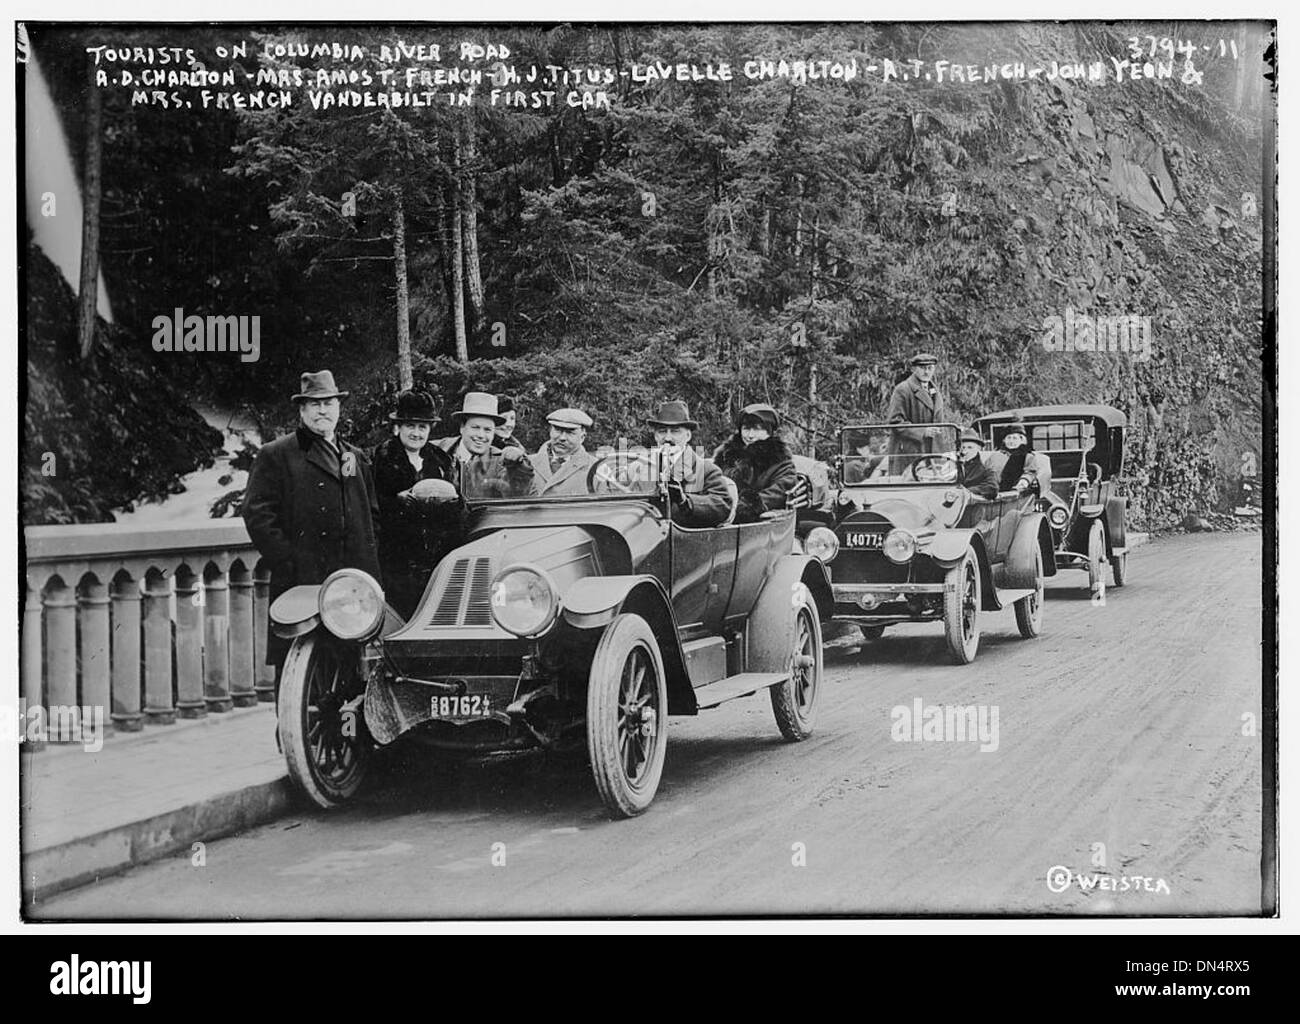 Tourists on Columbia River Rd. -- French Vanderbilt party [named on neg.] (LOC) - Stock Image